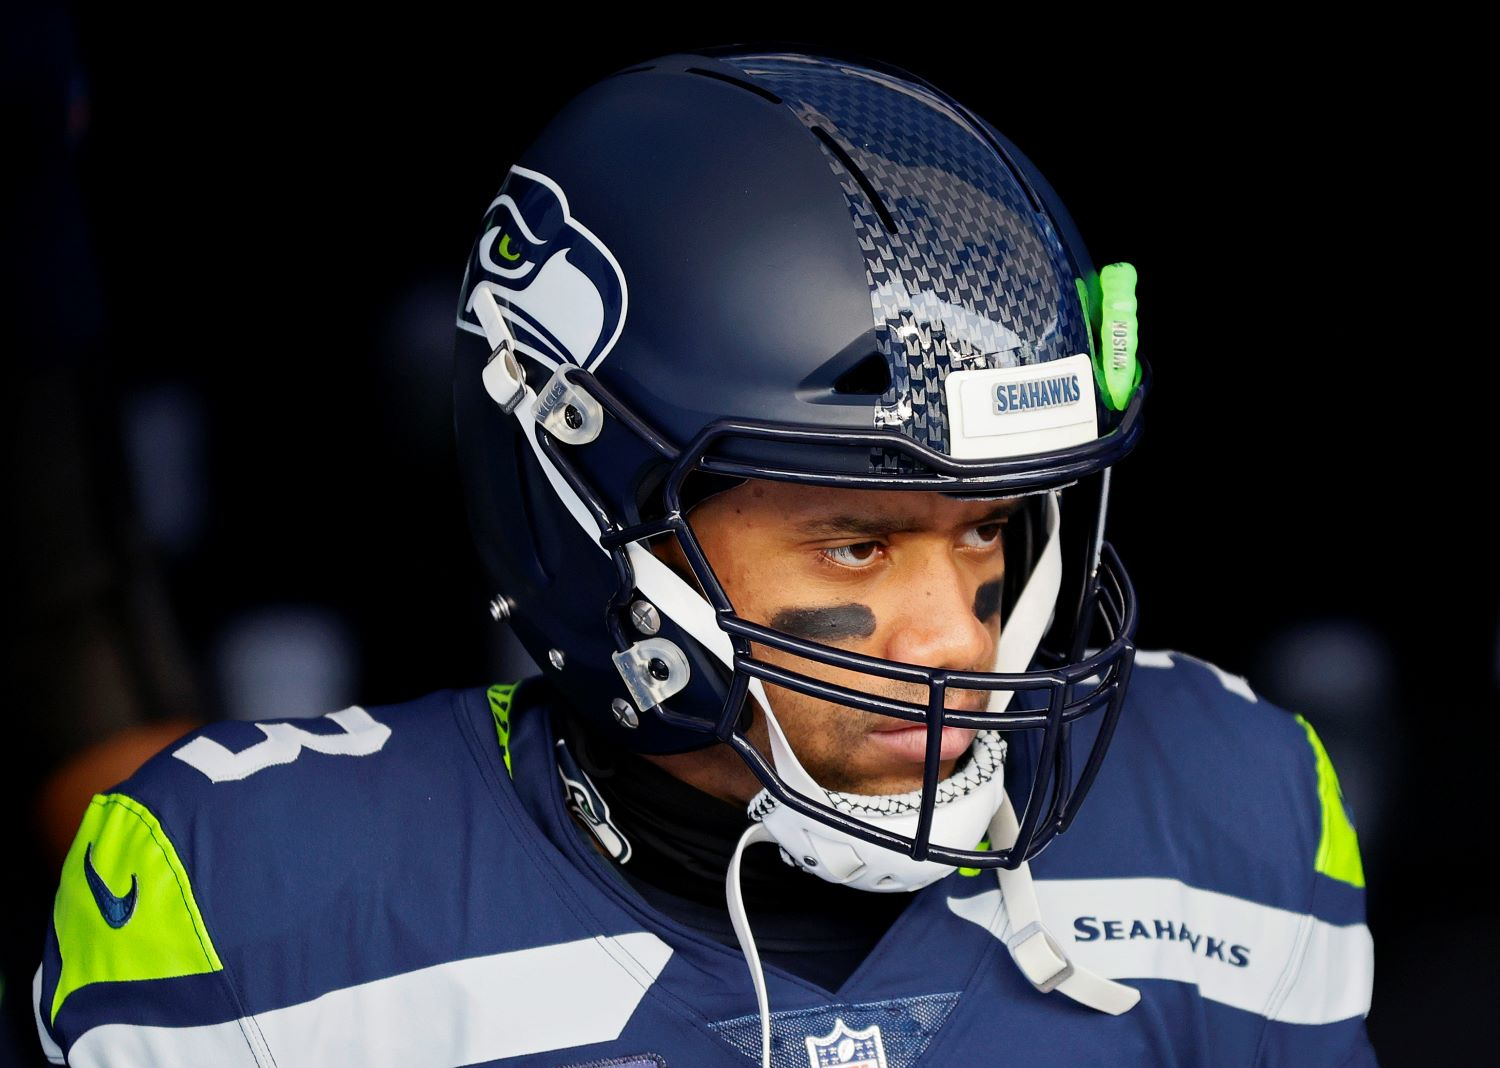 Russell Wilson should be worried about his future with the Seahawks given the team's recent committment to a GM who has lost his magic touch.